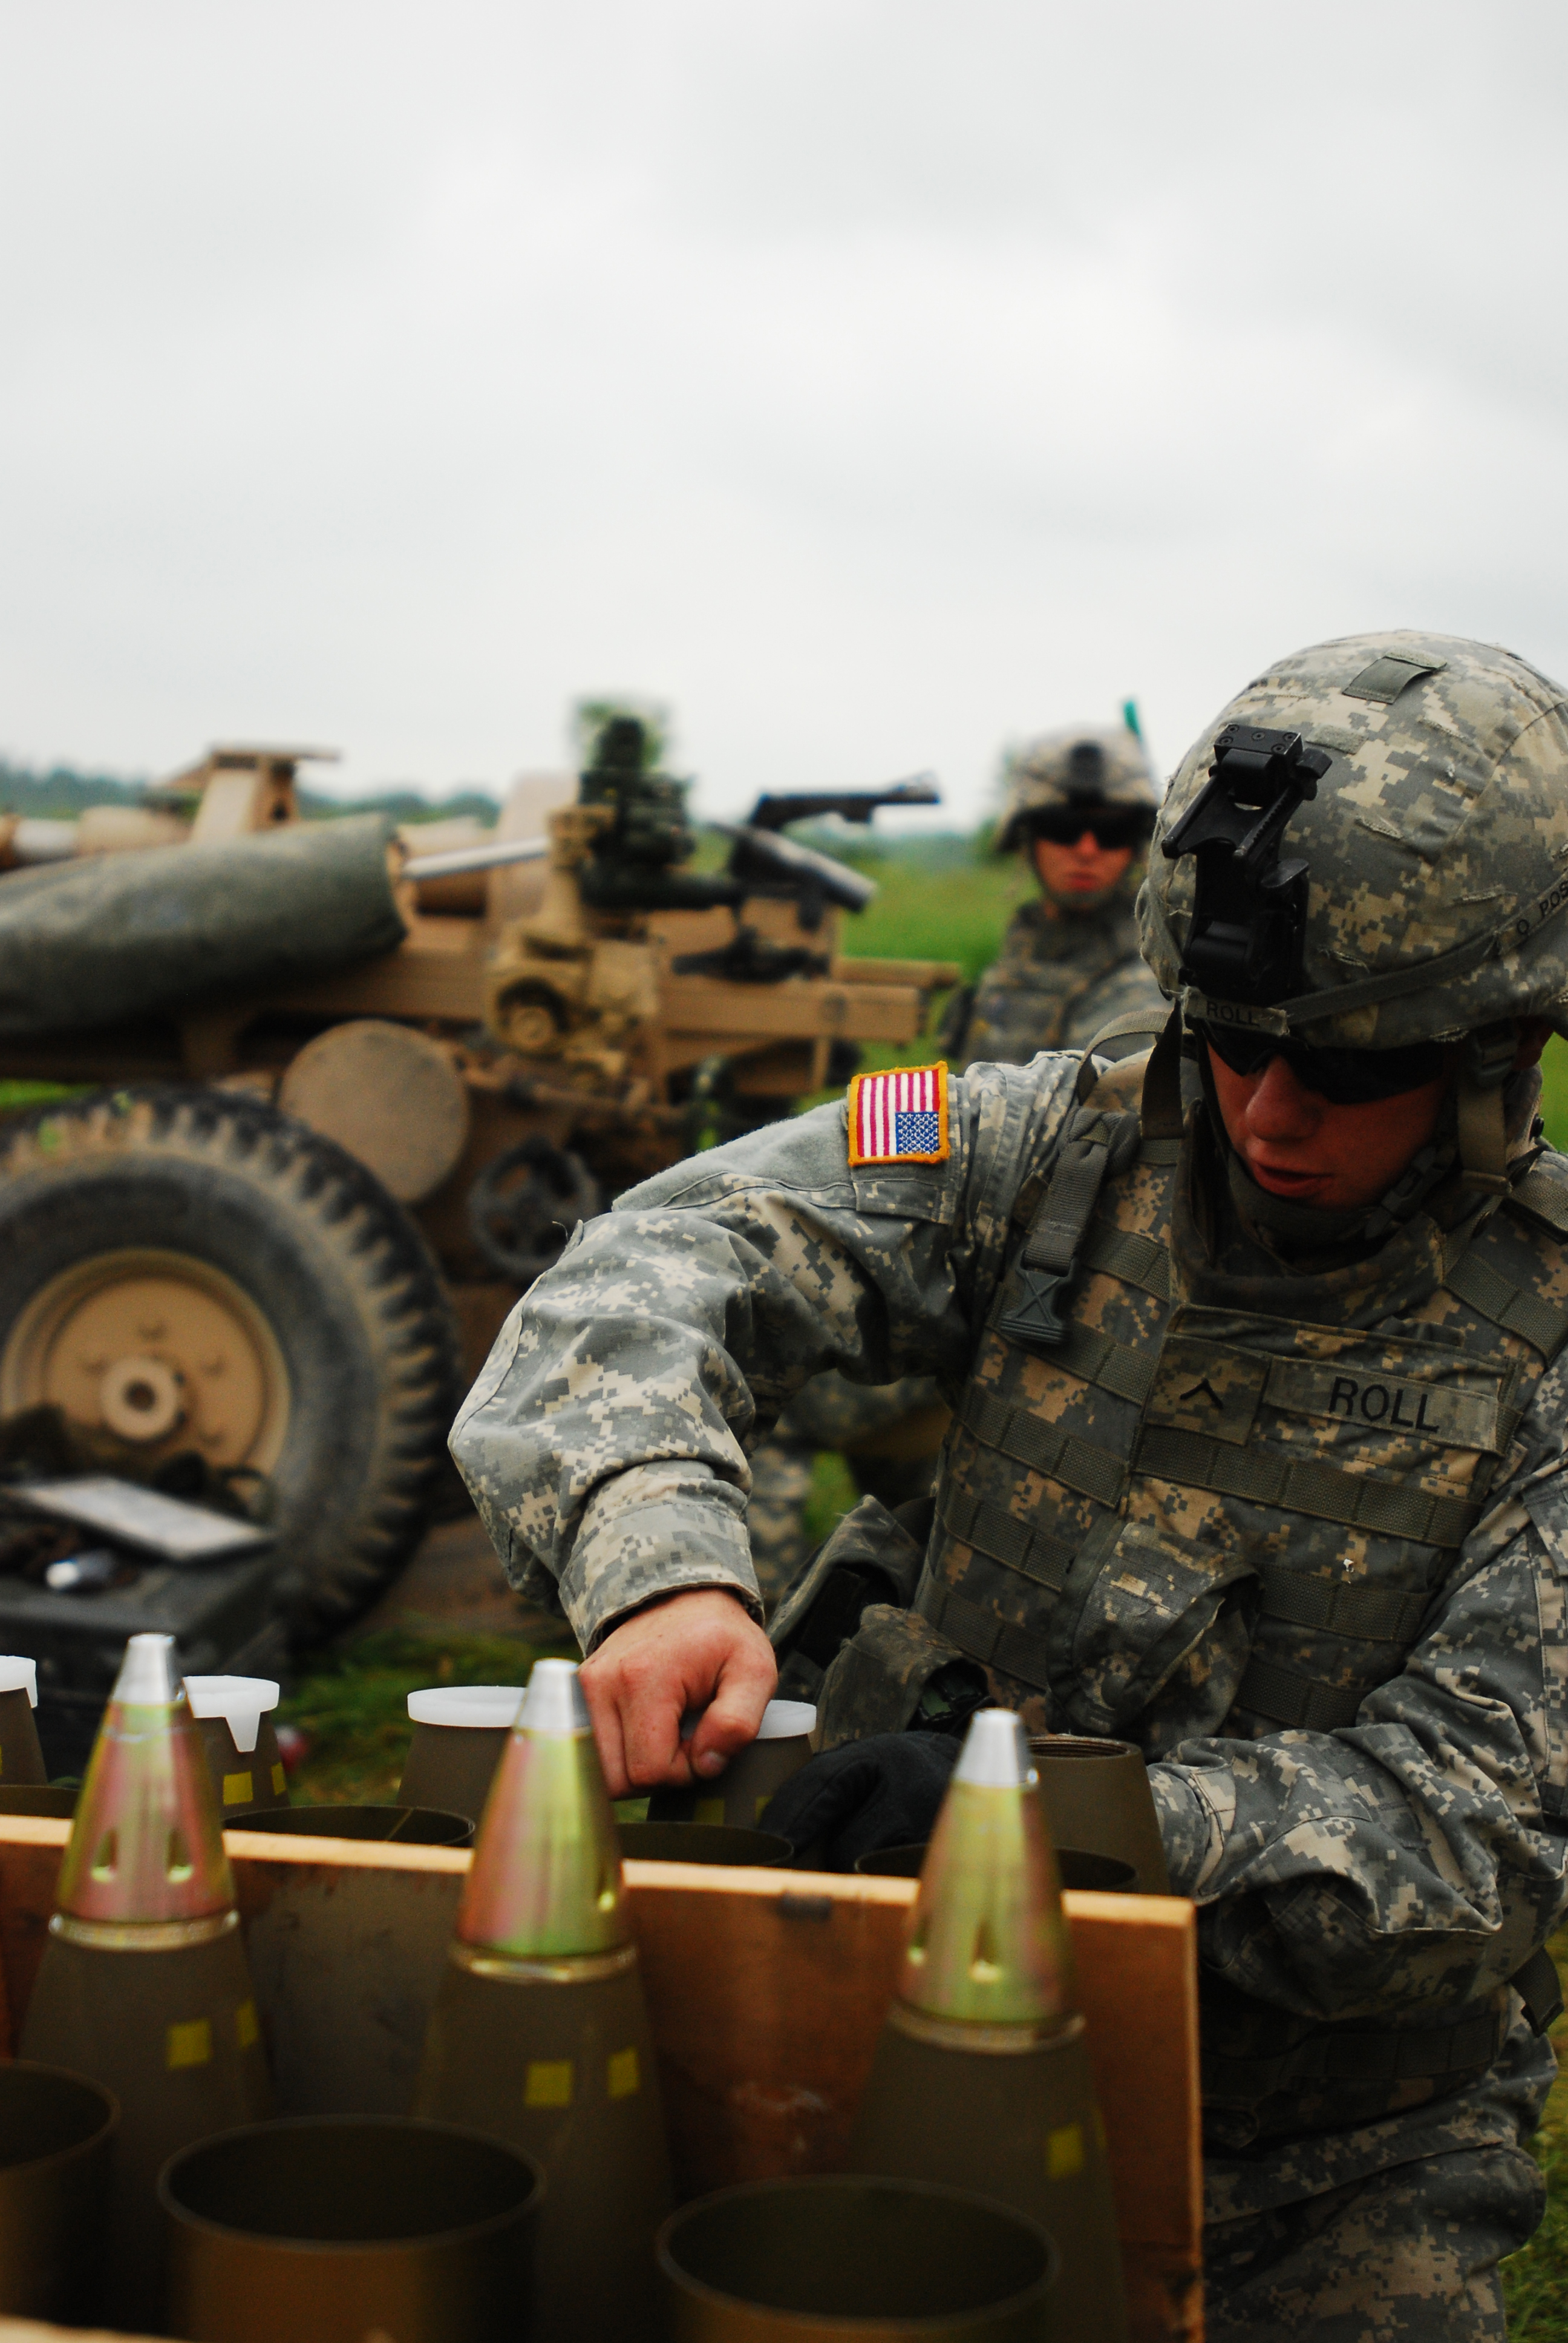 File:Combined live-fire exercise on Fort Drum DVIDS181291